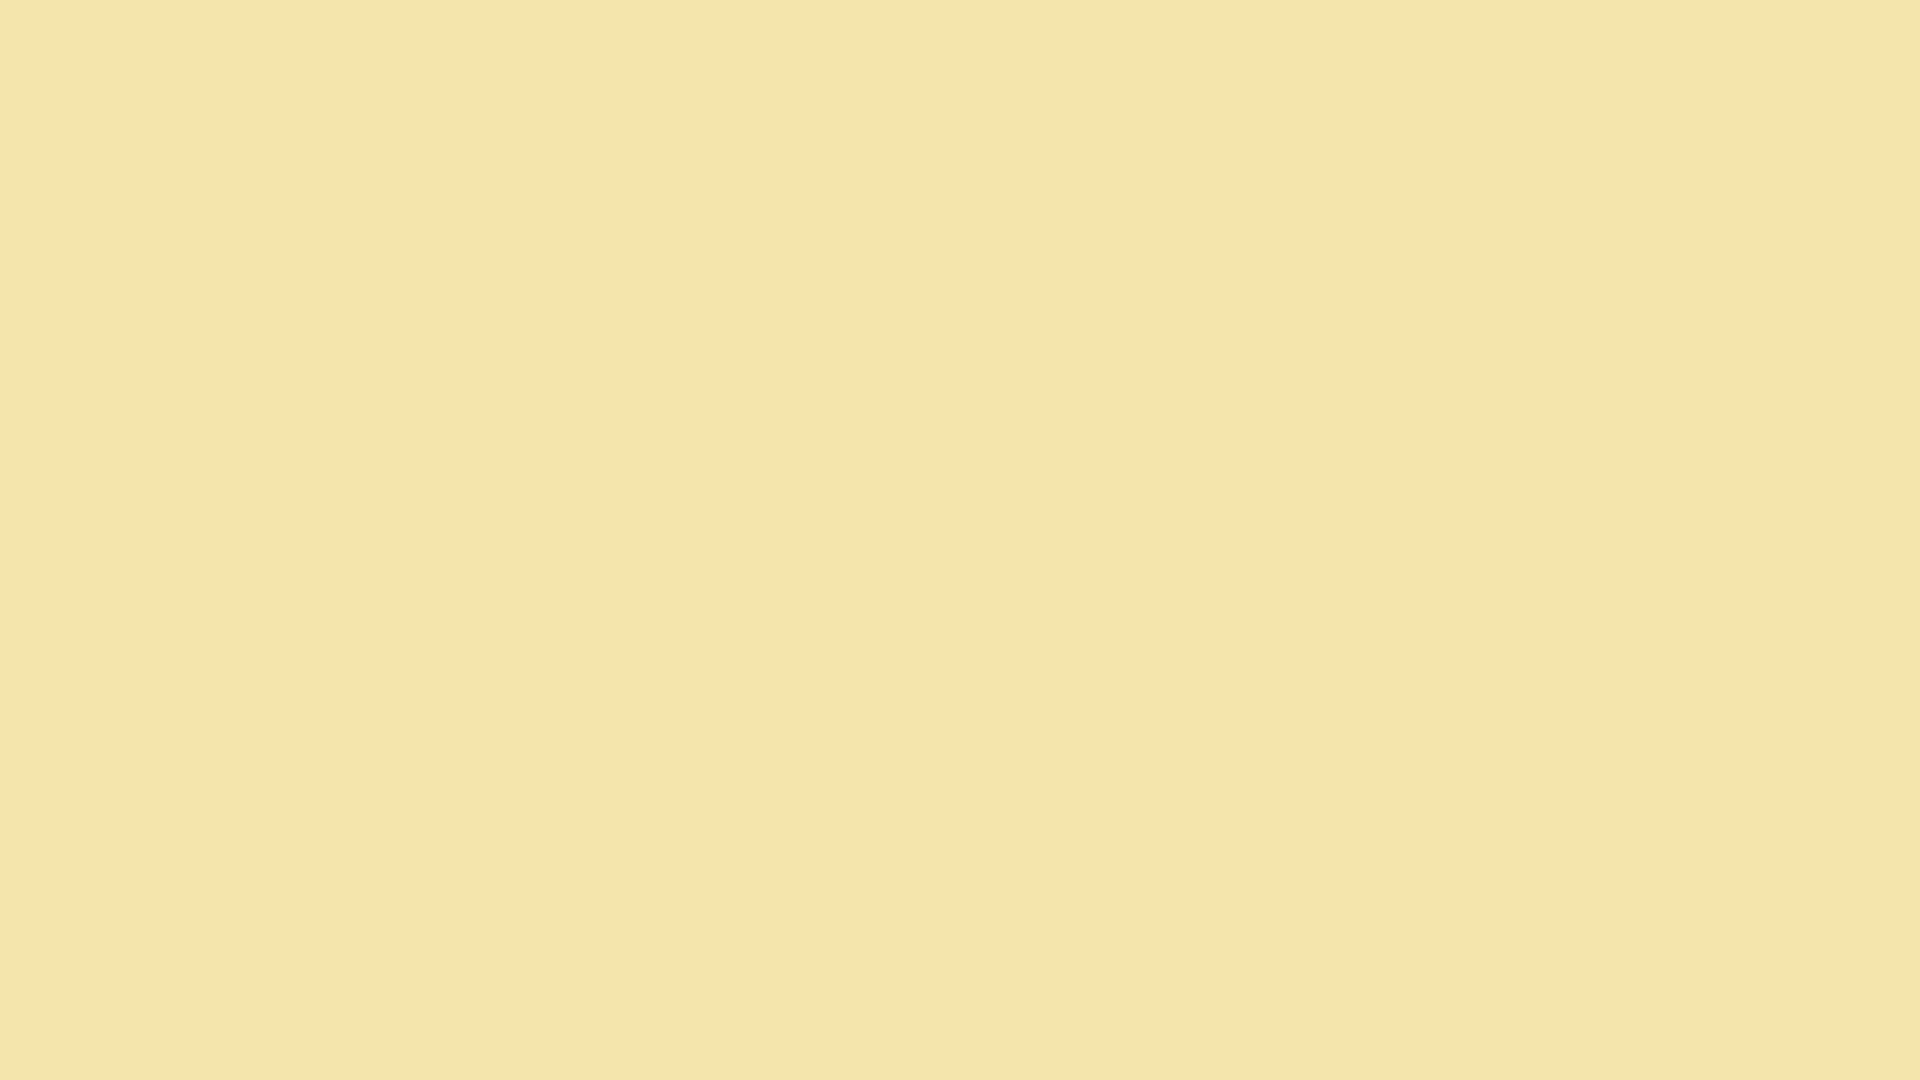 1920x1080 Medium Champagne Solid Color Background | Background ...